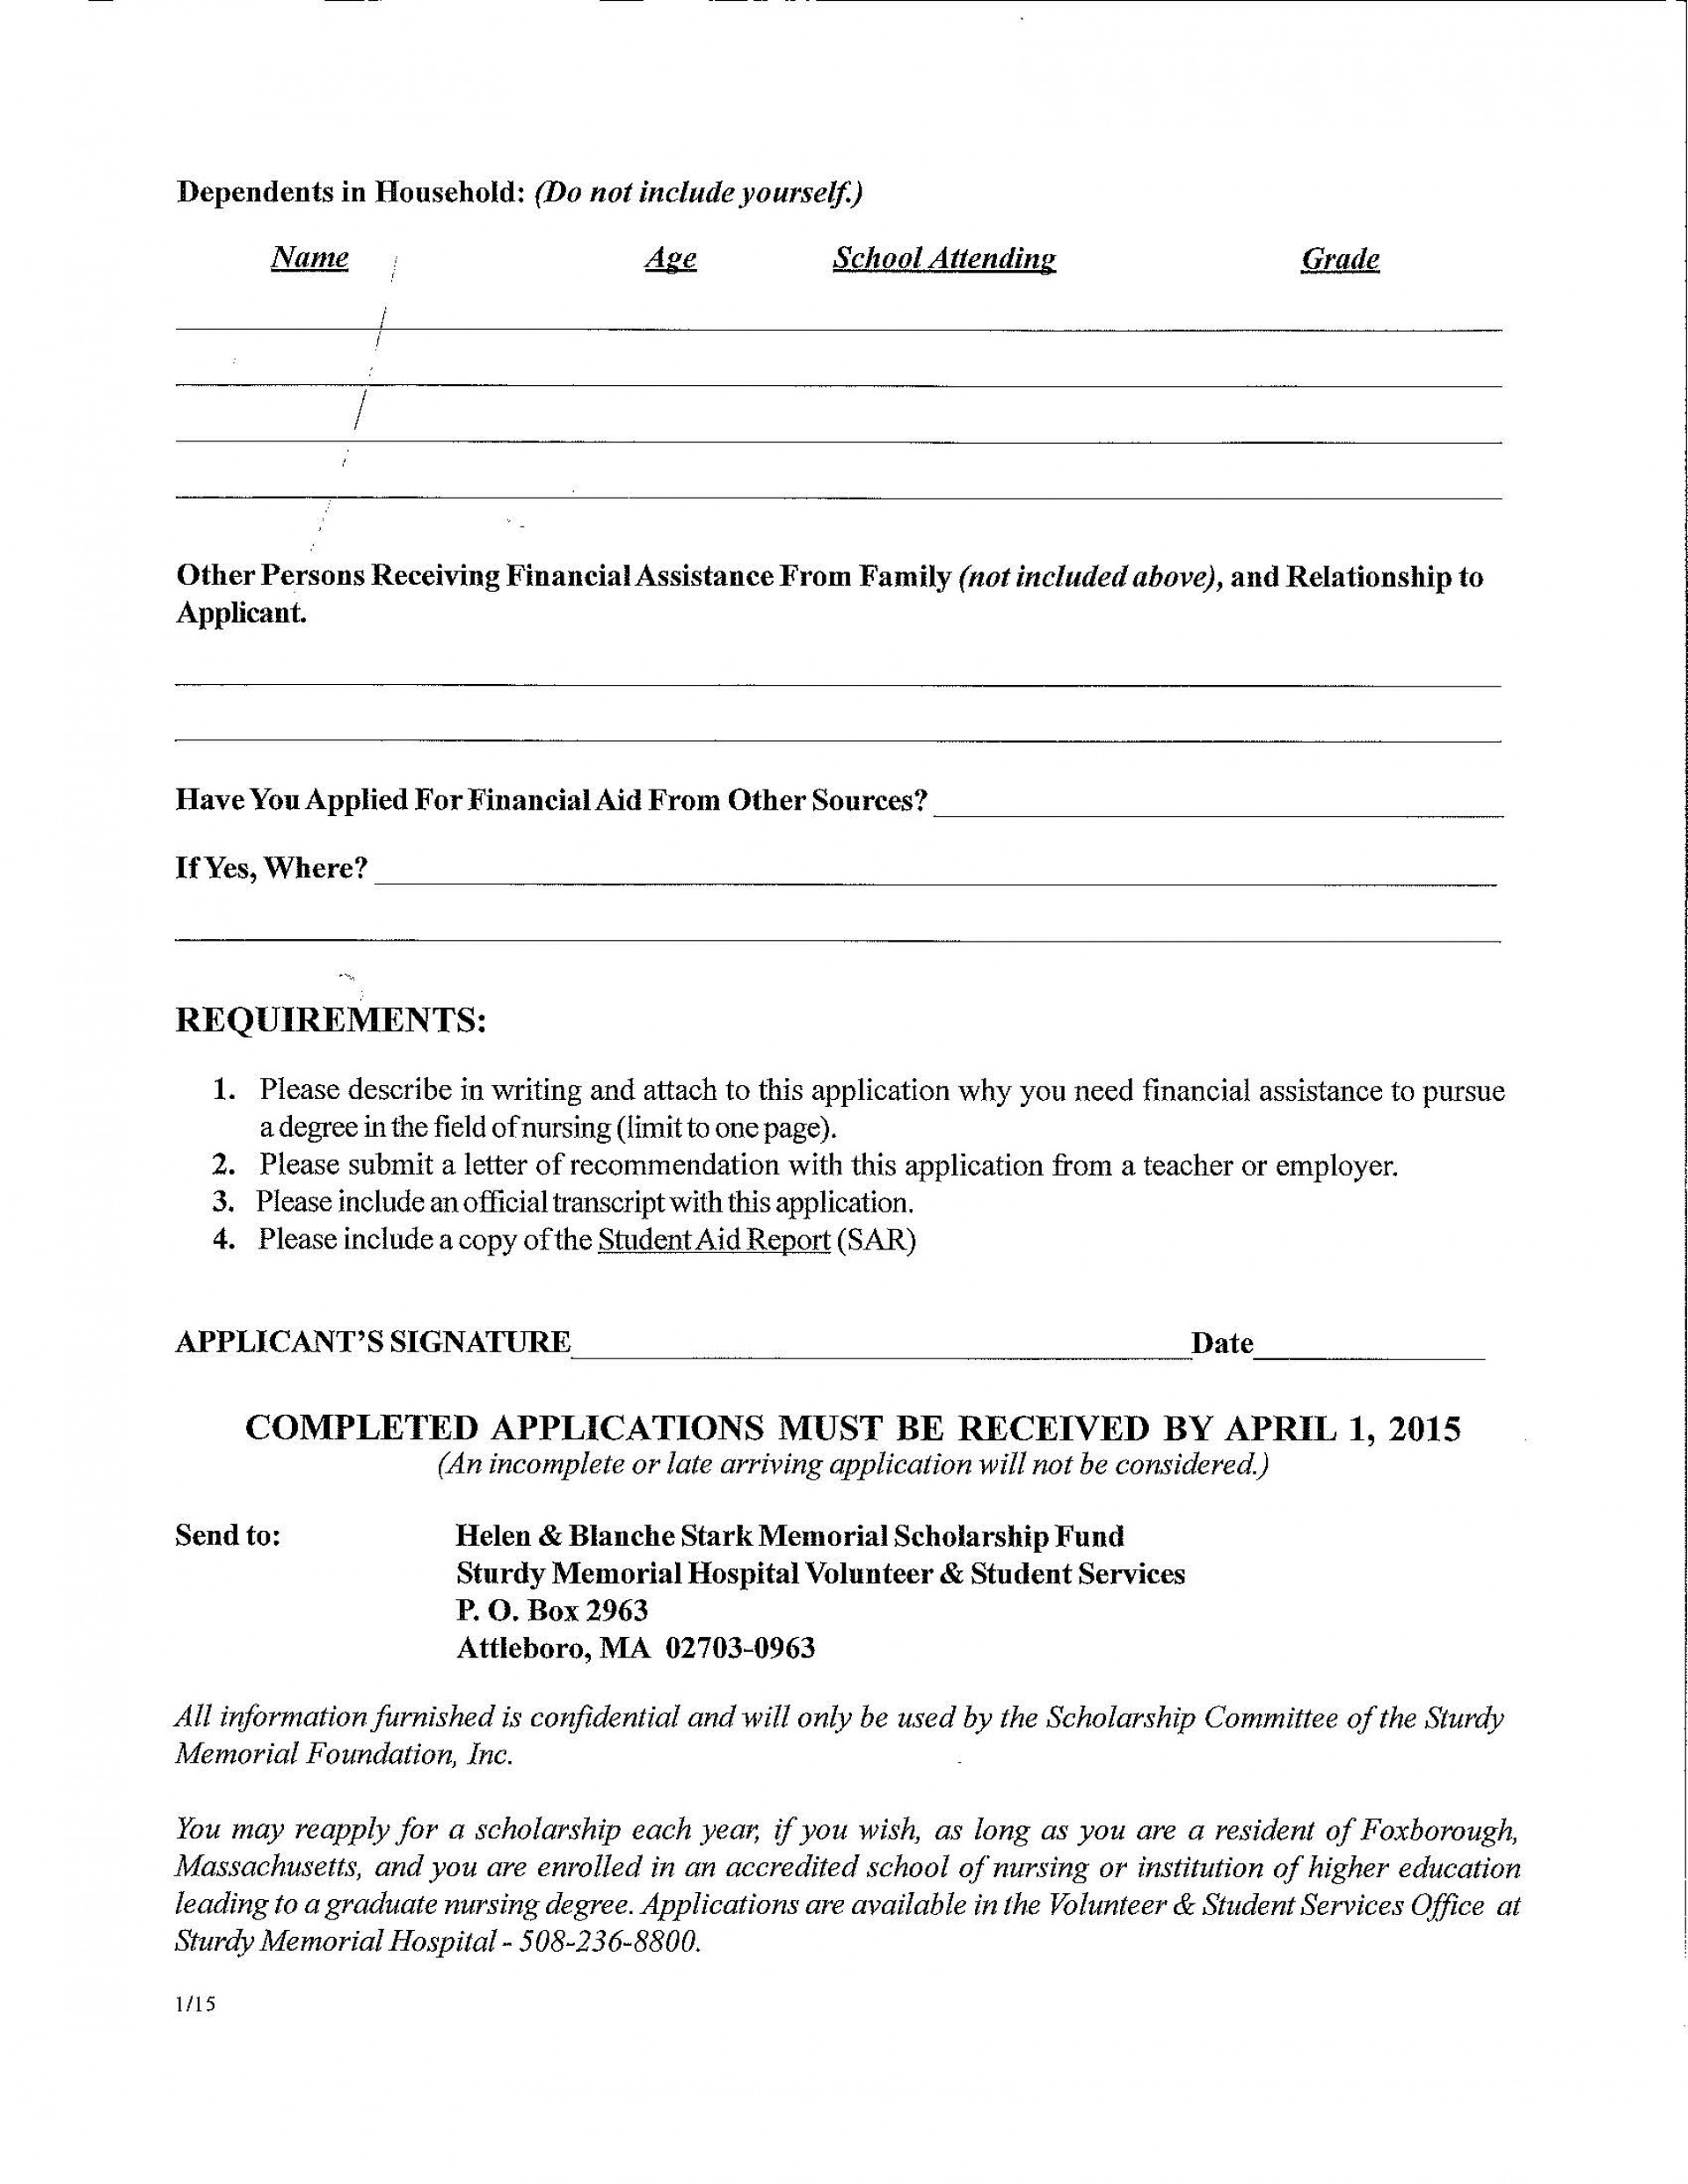 016 Essay Example Descriptive Thesis Helen Blanche Stark Memorial Scholarship Fund Application Page 2 Rare Statements Examples 1920